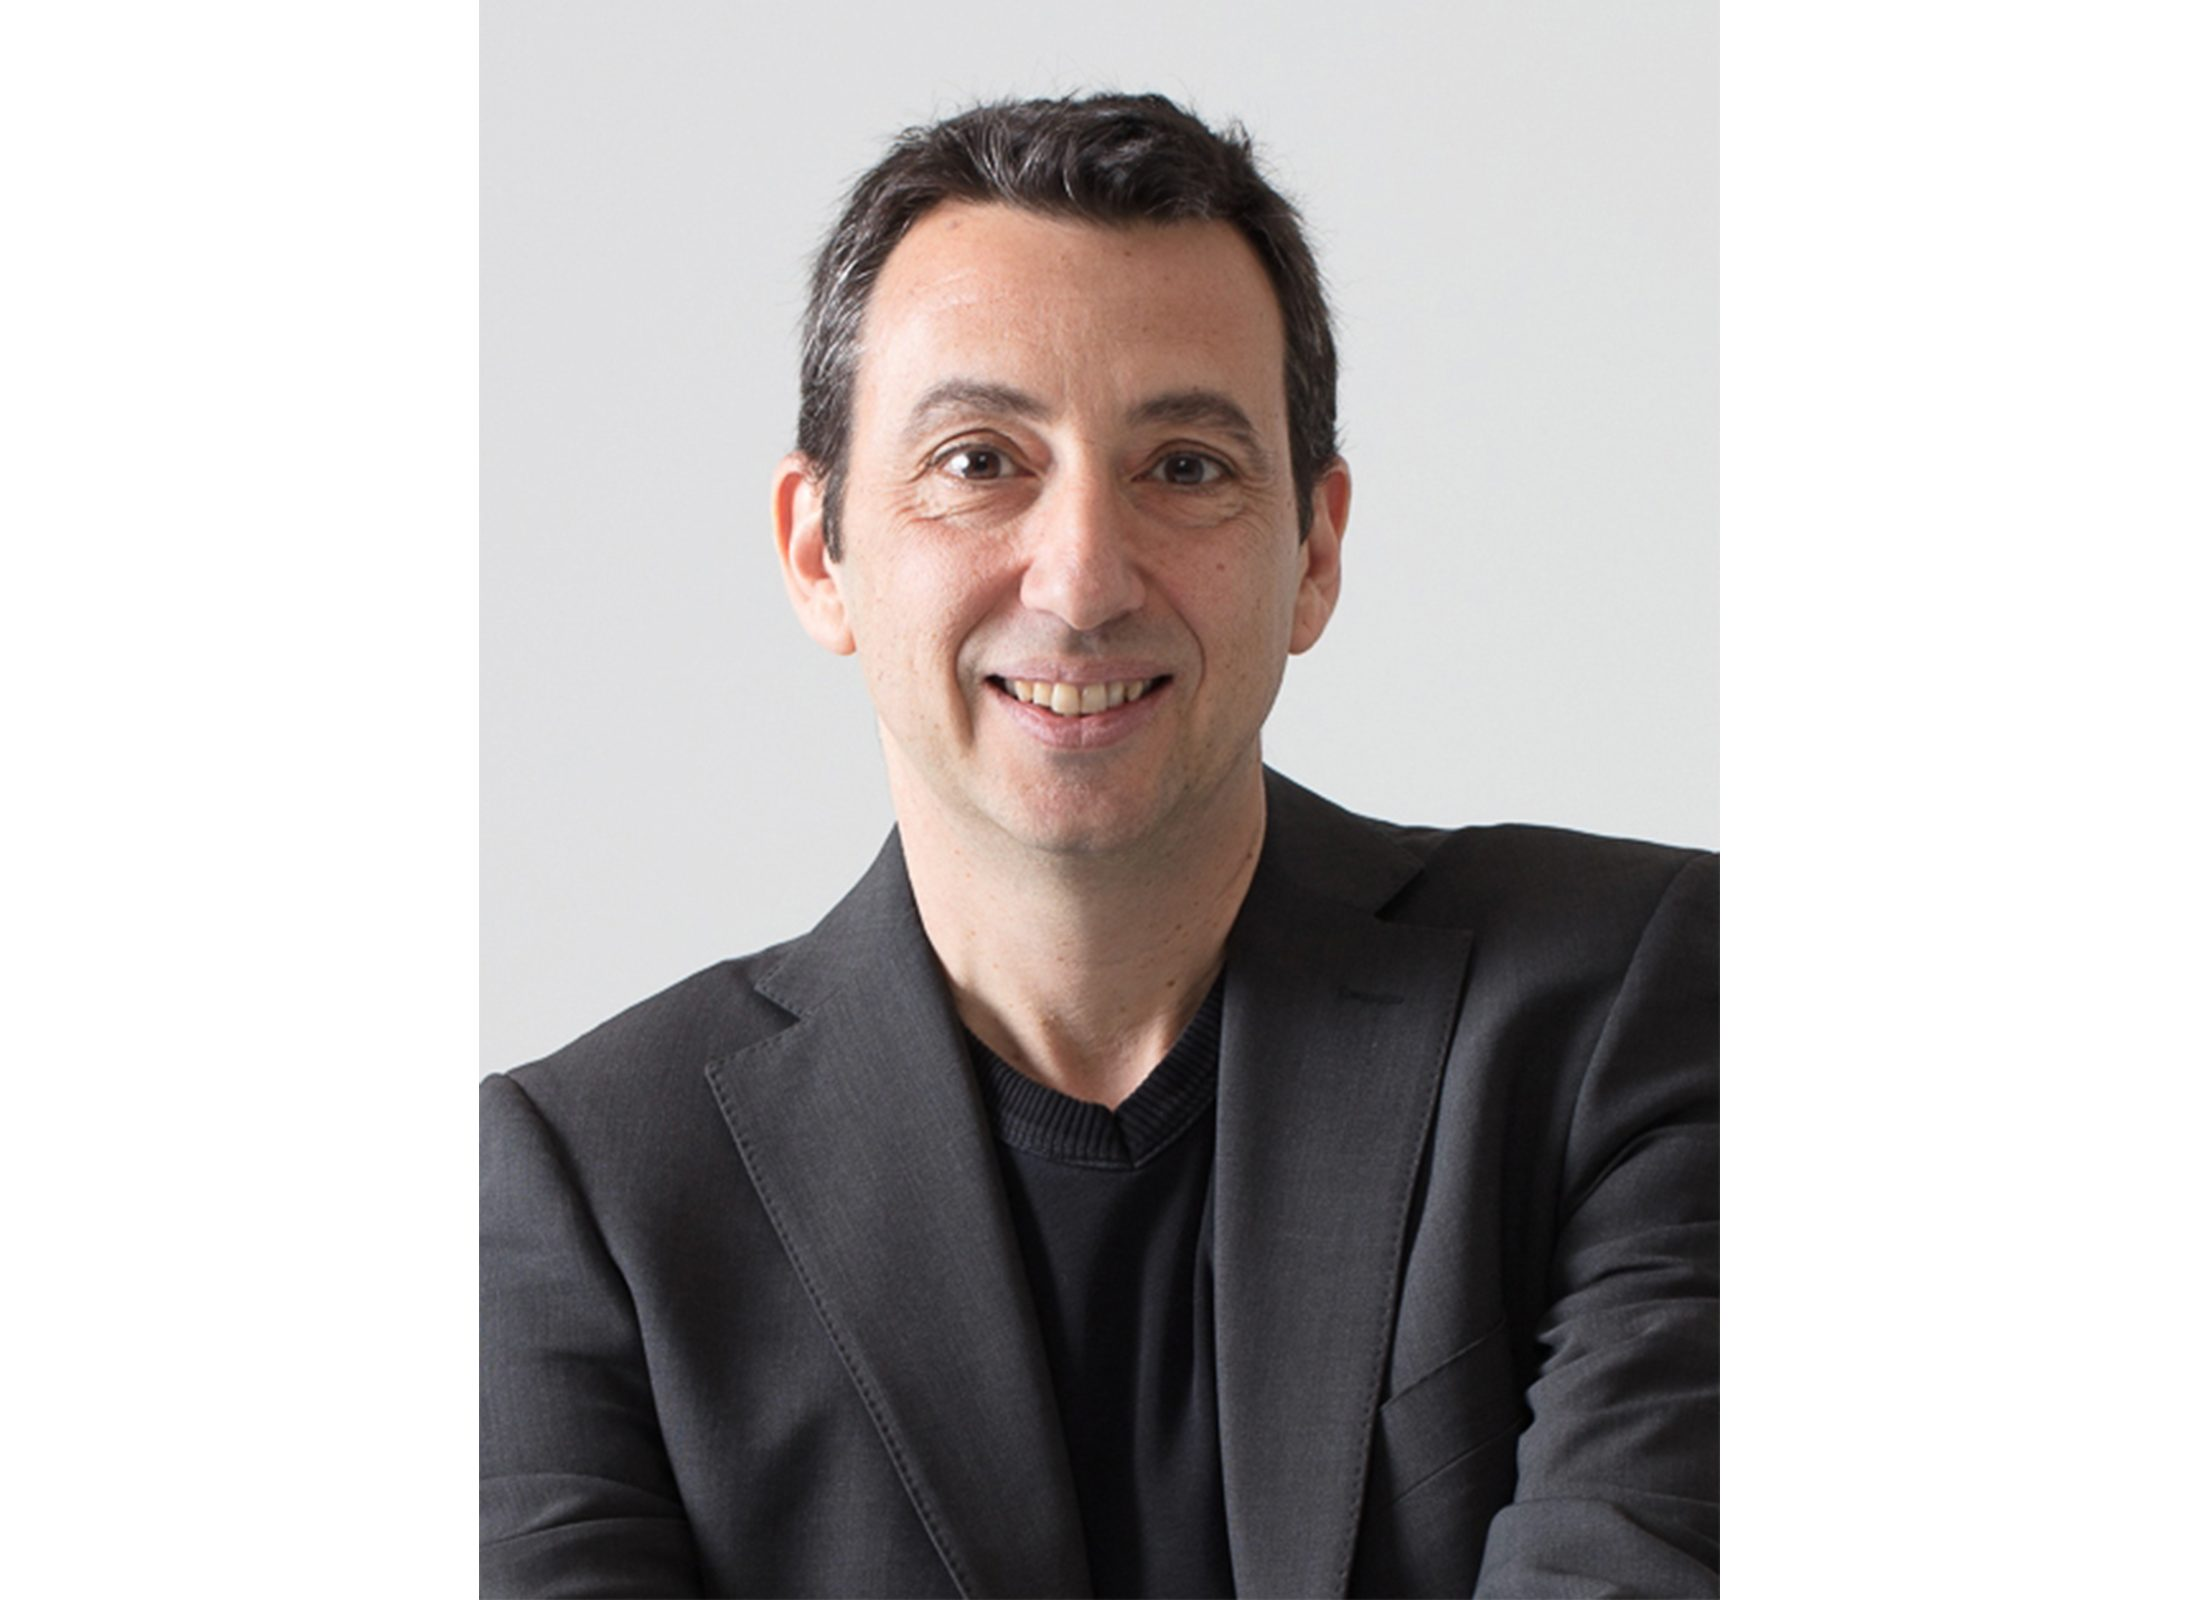 Federico Casalegno, Samsung's Head of the Samsung Design Innovation Center (SDIC) and Mobile Experience Planning